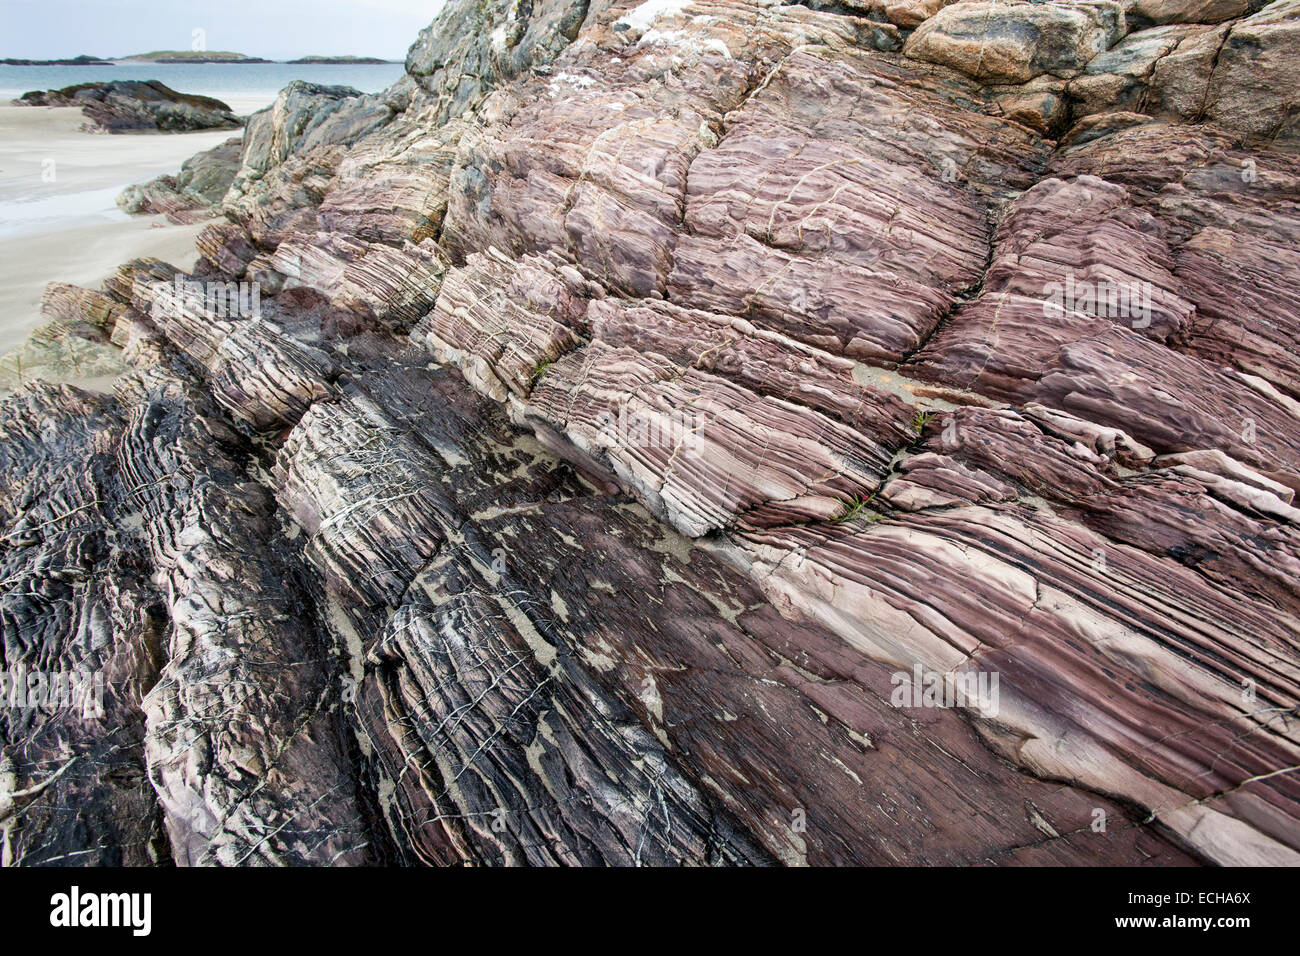 Layered red sandstone outcrop on Glassilaun Beach, Connemara, County Galway, Ireland. - Stock Image